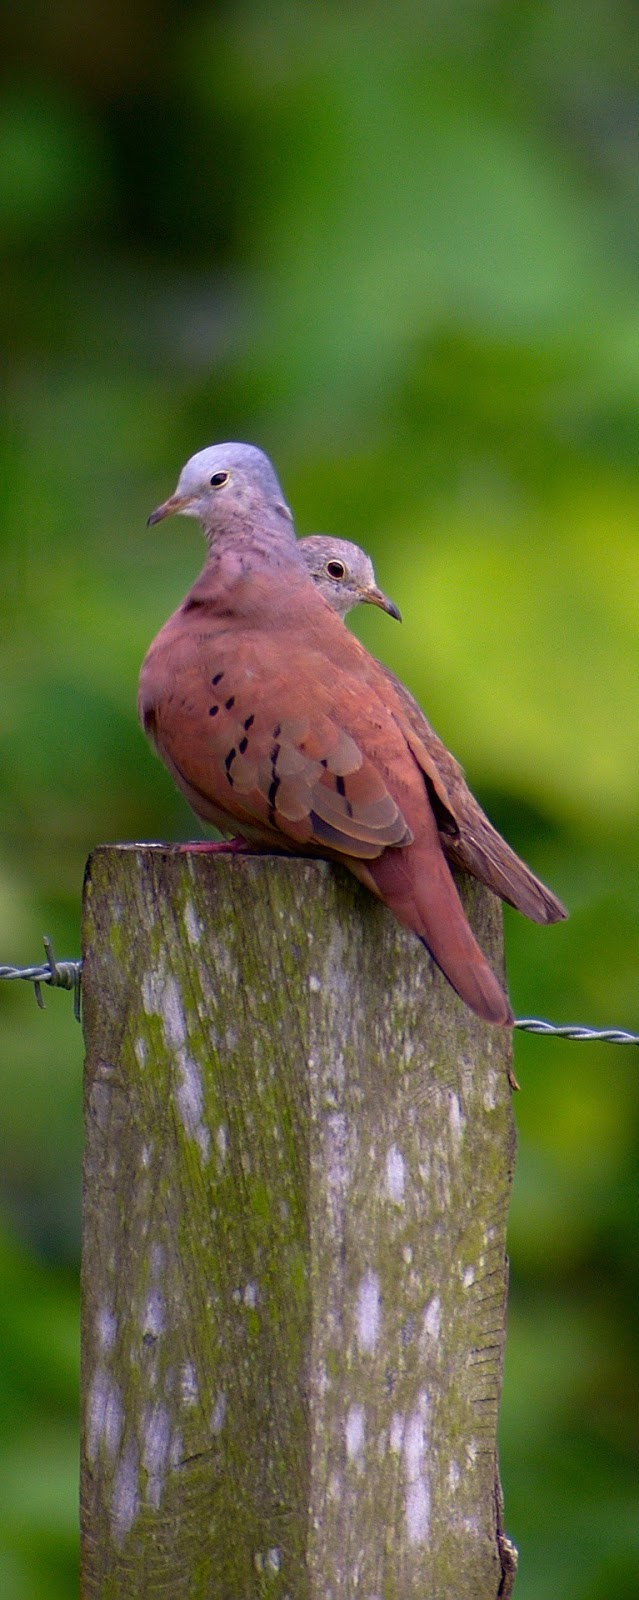 Dove pair on a wooden post.